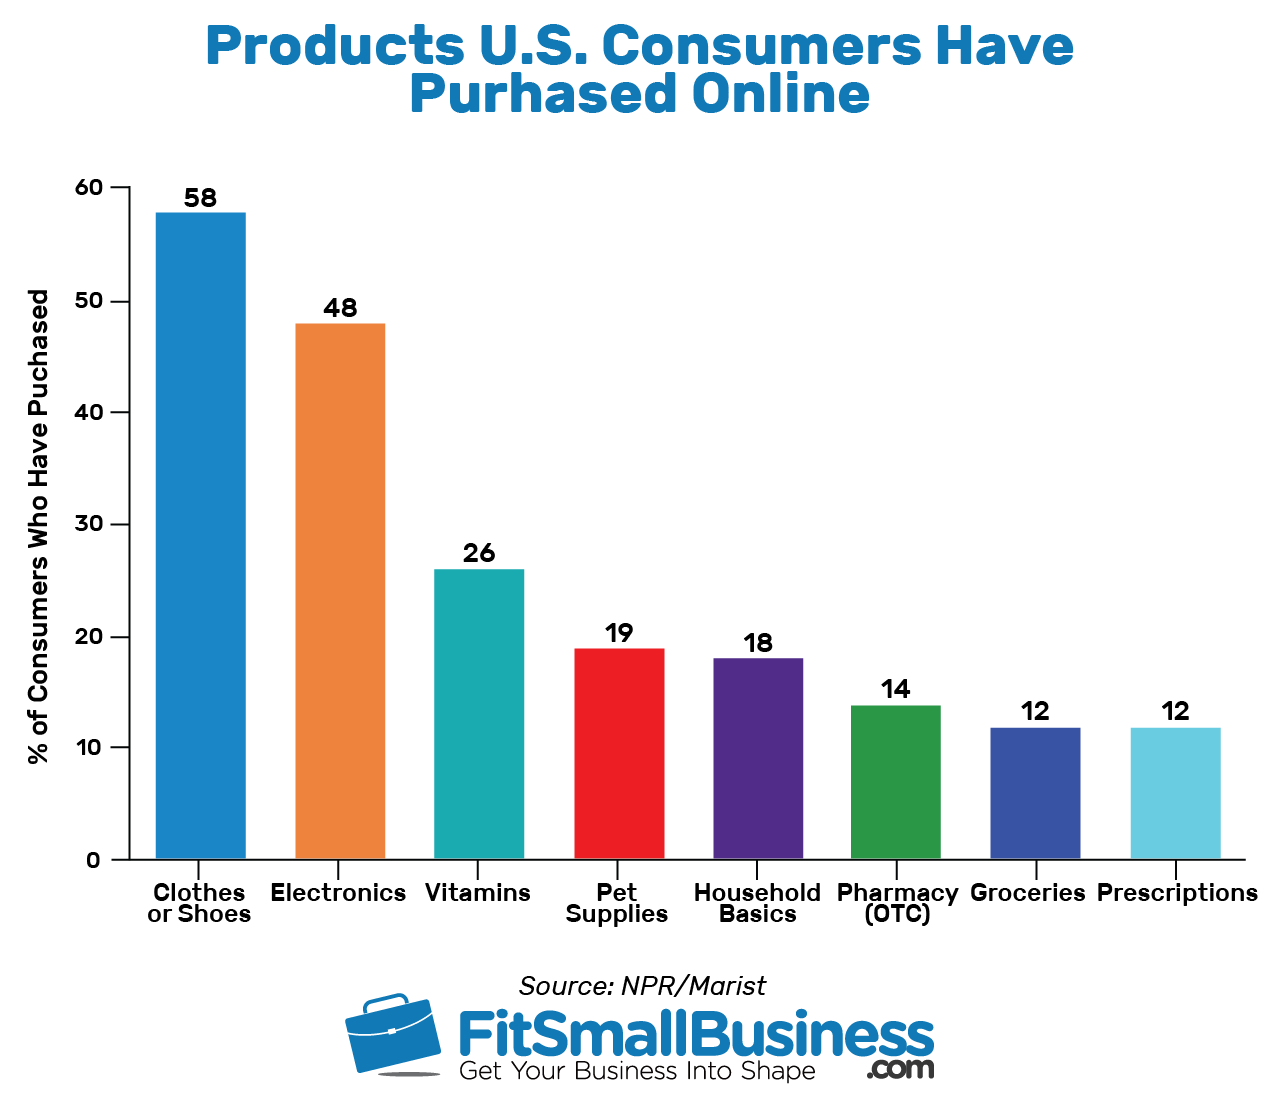 Consumers online purchased - online shopping statistics